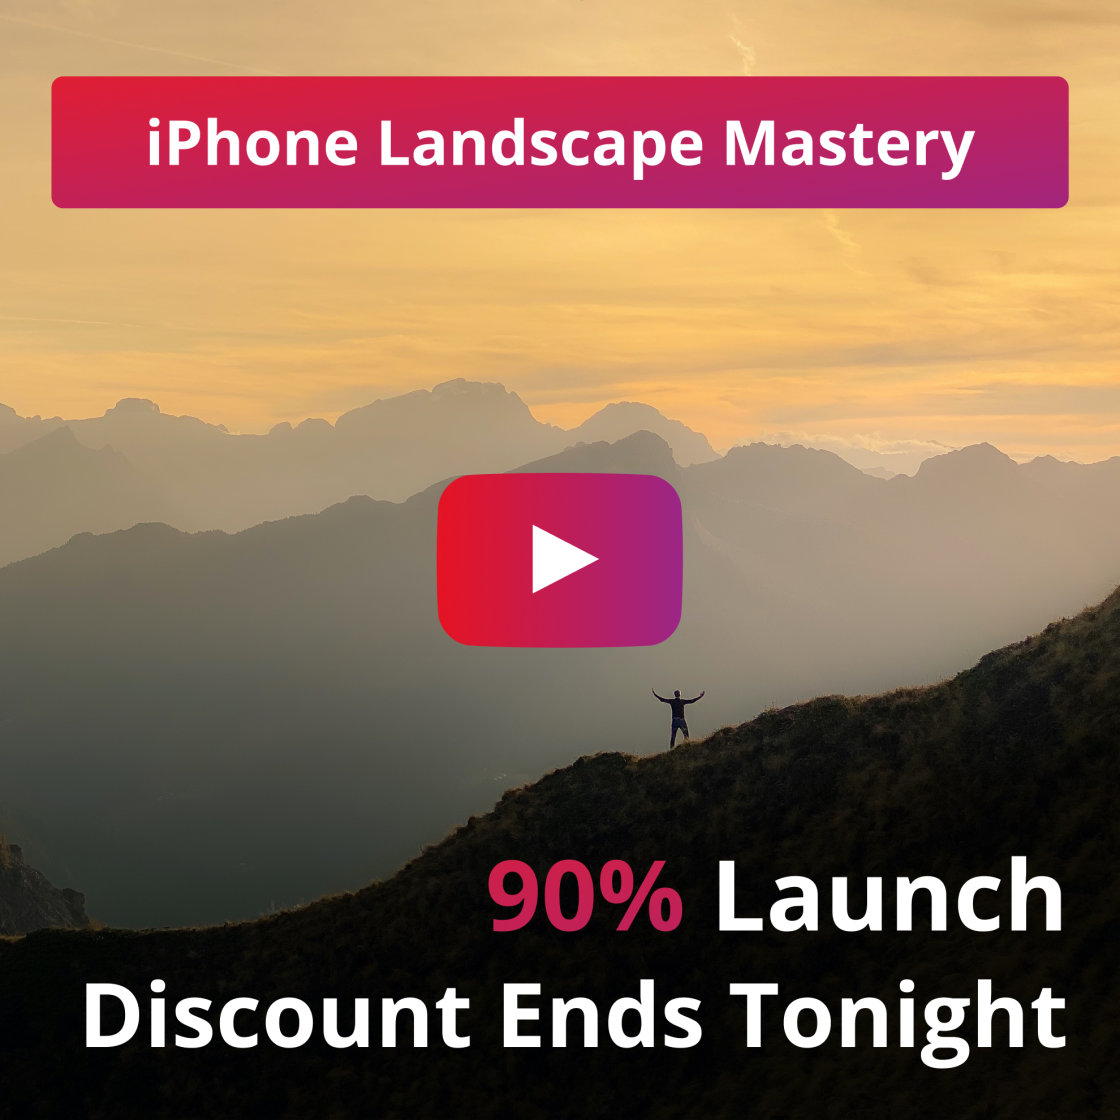 90% Discount On Our iPhone Landscape Photography Course… ENDS TONIGHT!